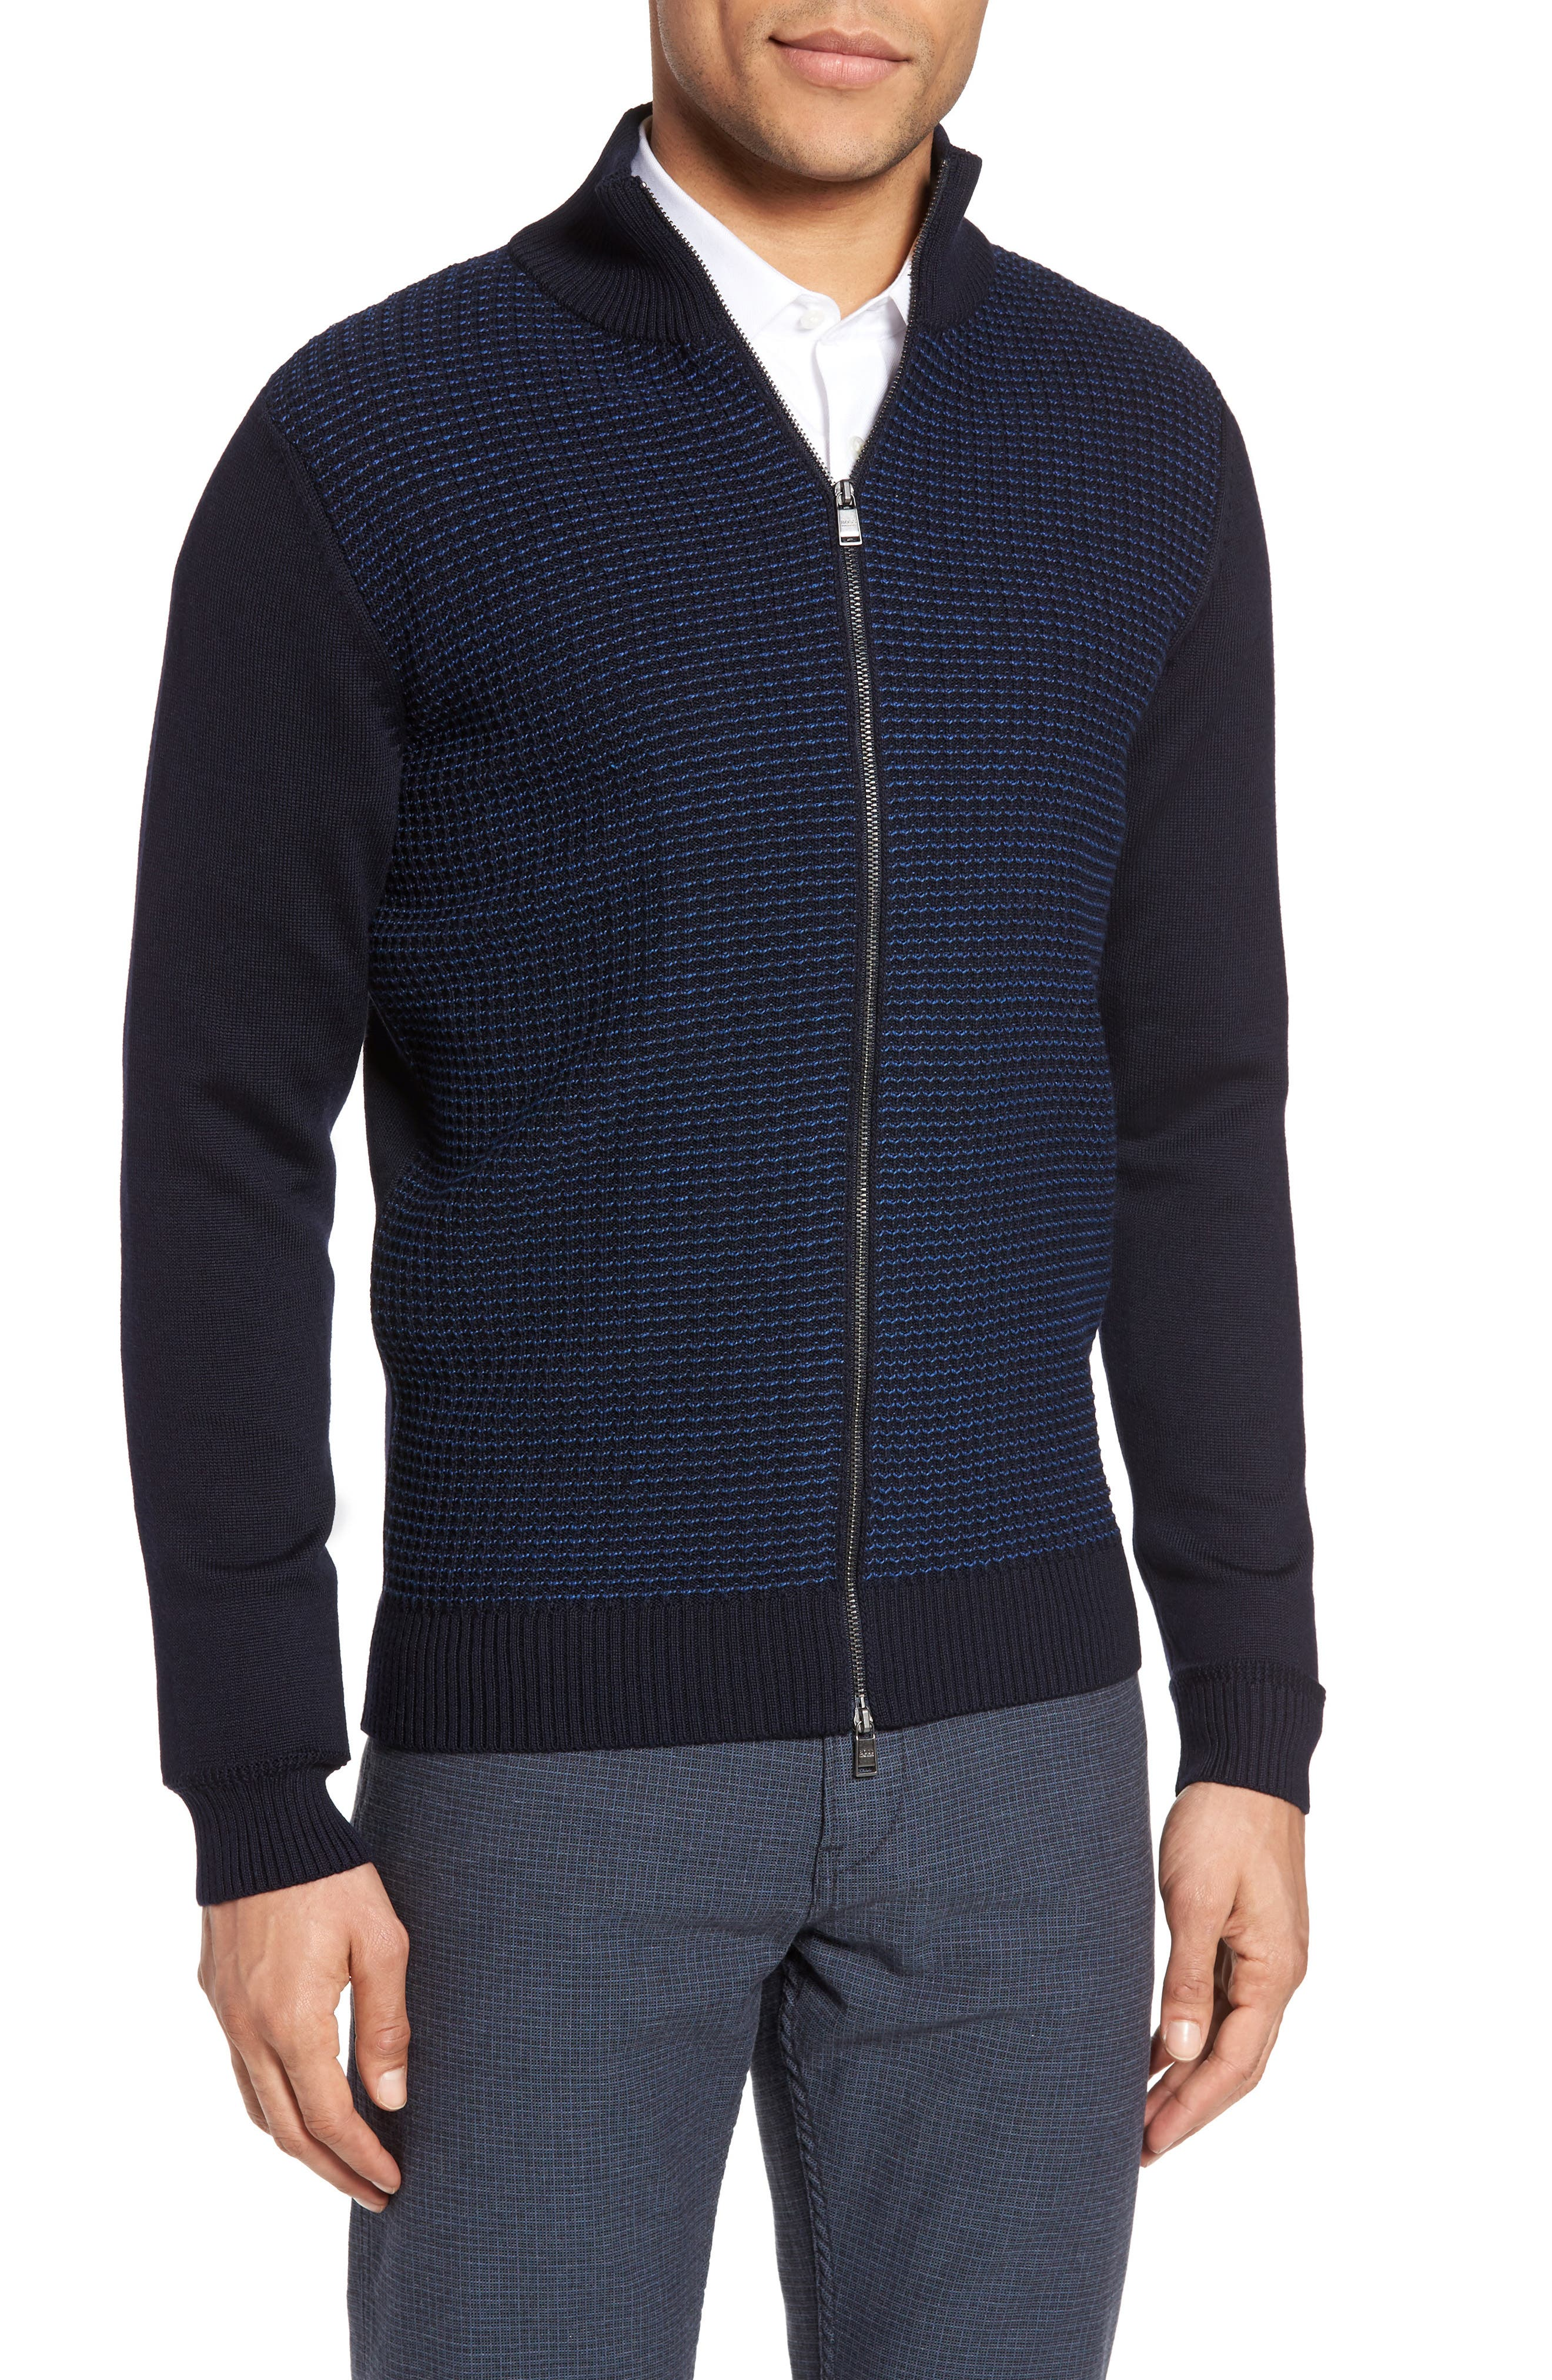 BOSS Bacco Full Zip Wool Sweater Jacket